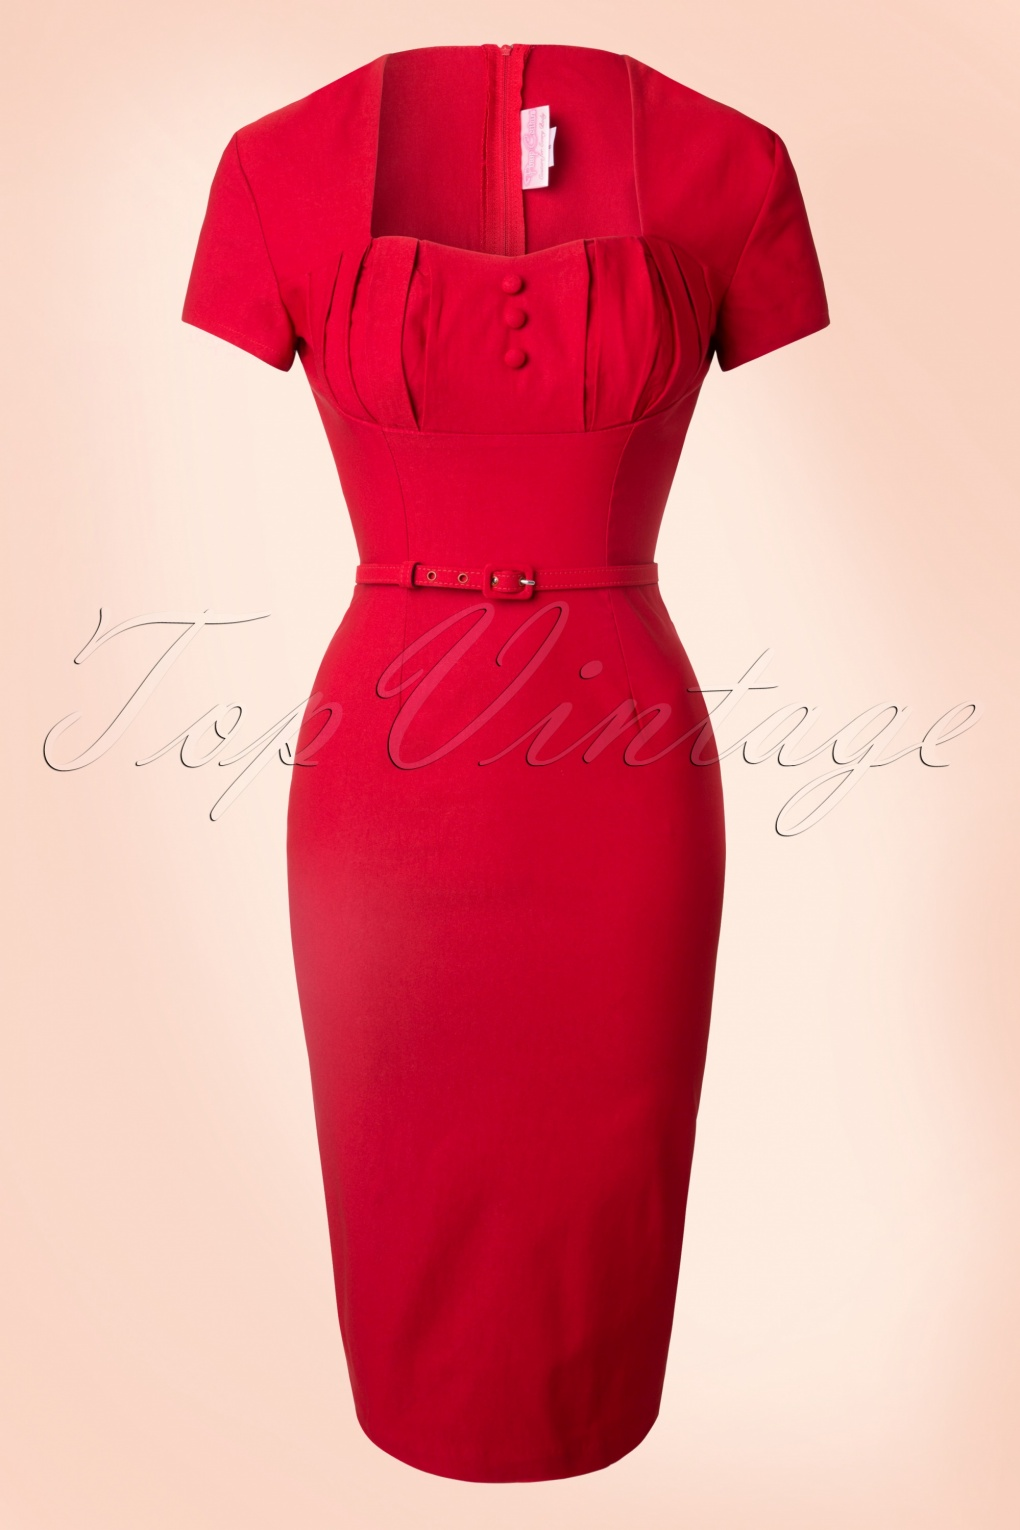 1940s Pinup Dresses for Sale 40s Charlotte Pencil Dress in Red £118.50 AT vintagedancer.com